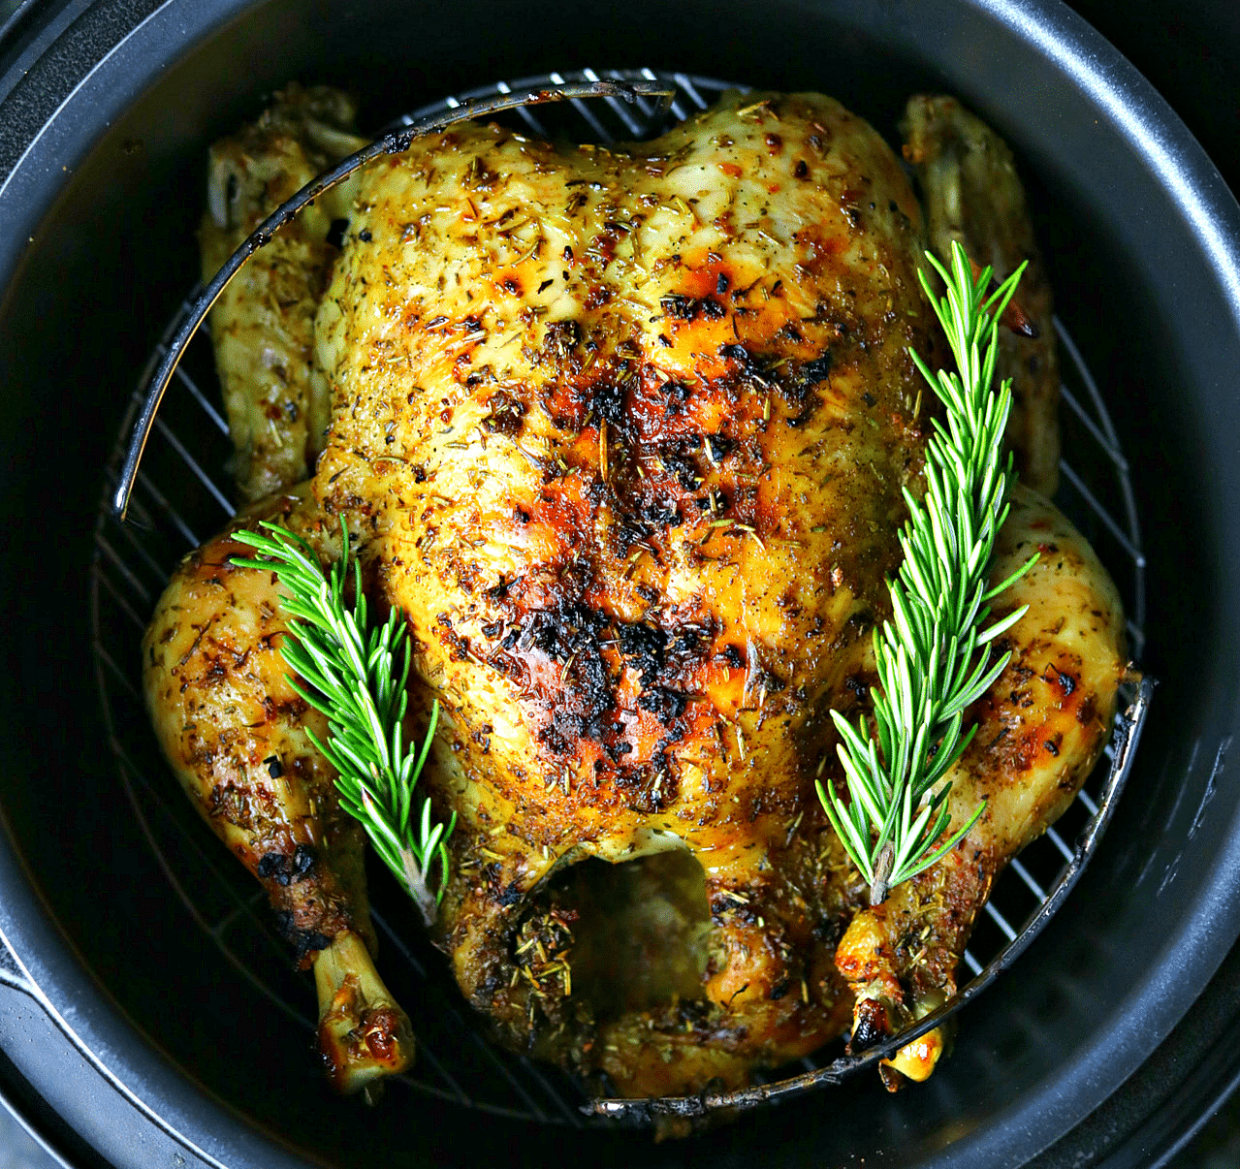 Easy Pressure Cooker Whole Chicken Recipe - Recipes Chicken In Pressure Cooker